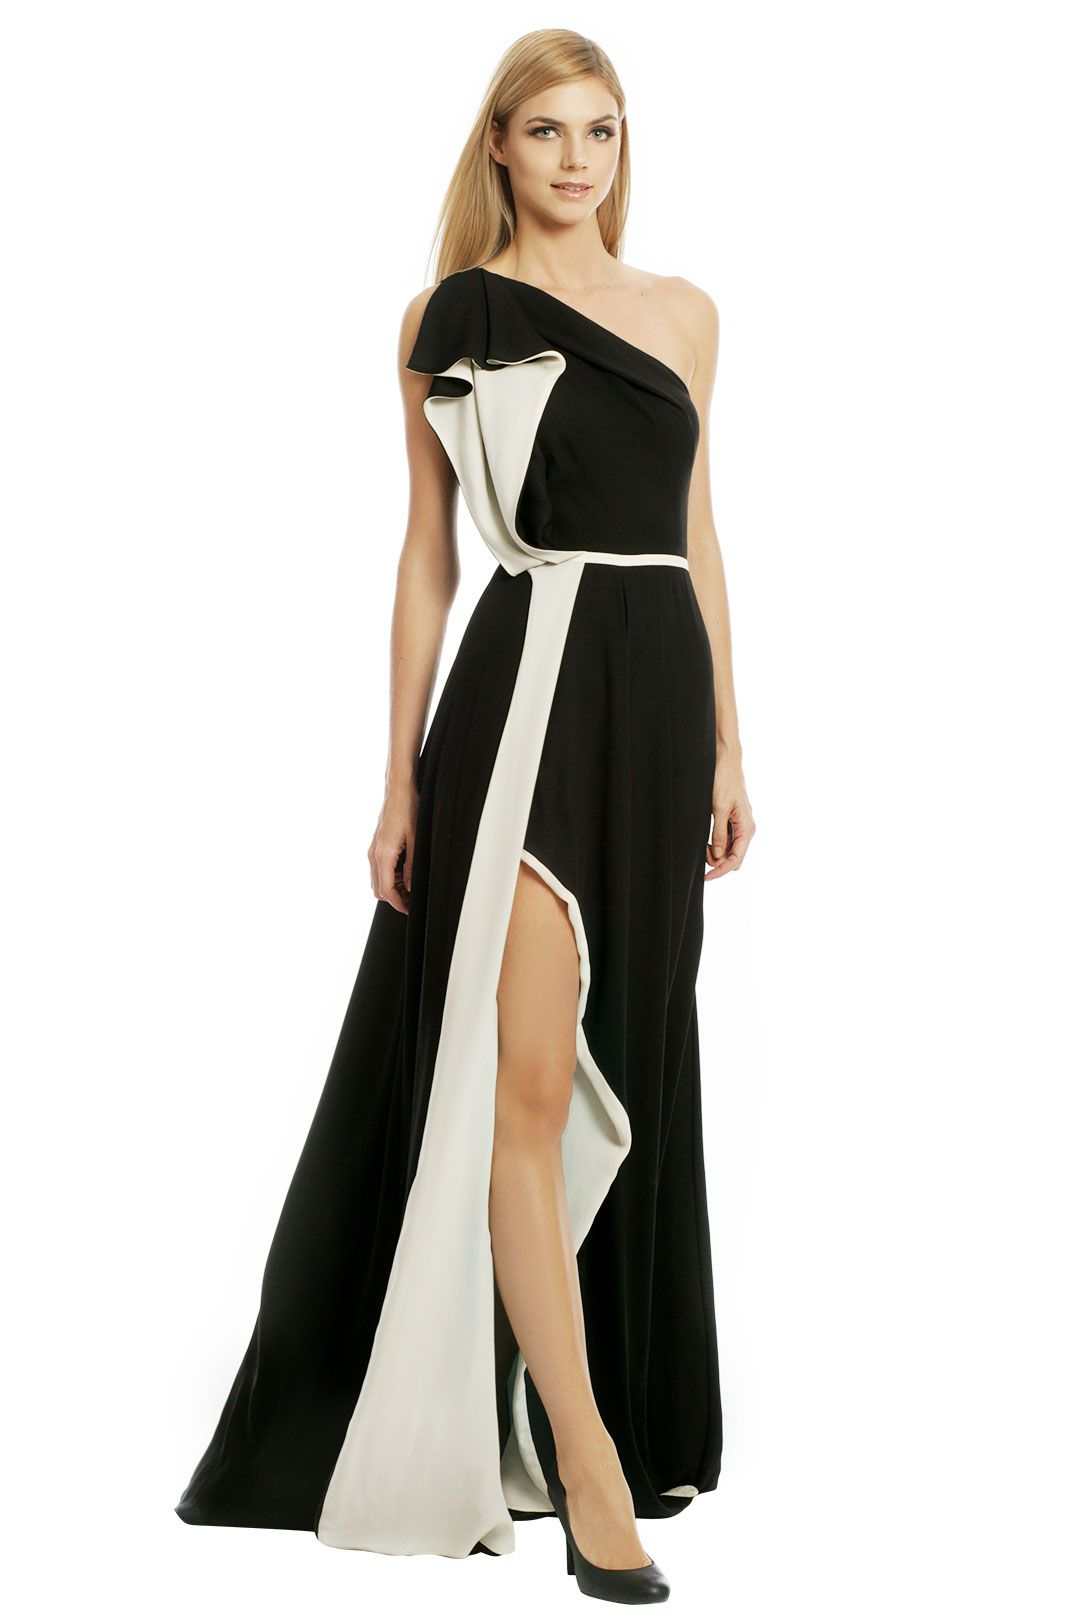 Pleasing To The Eye Gown | fashion obsessions | Pinterest | Halston ...